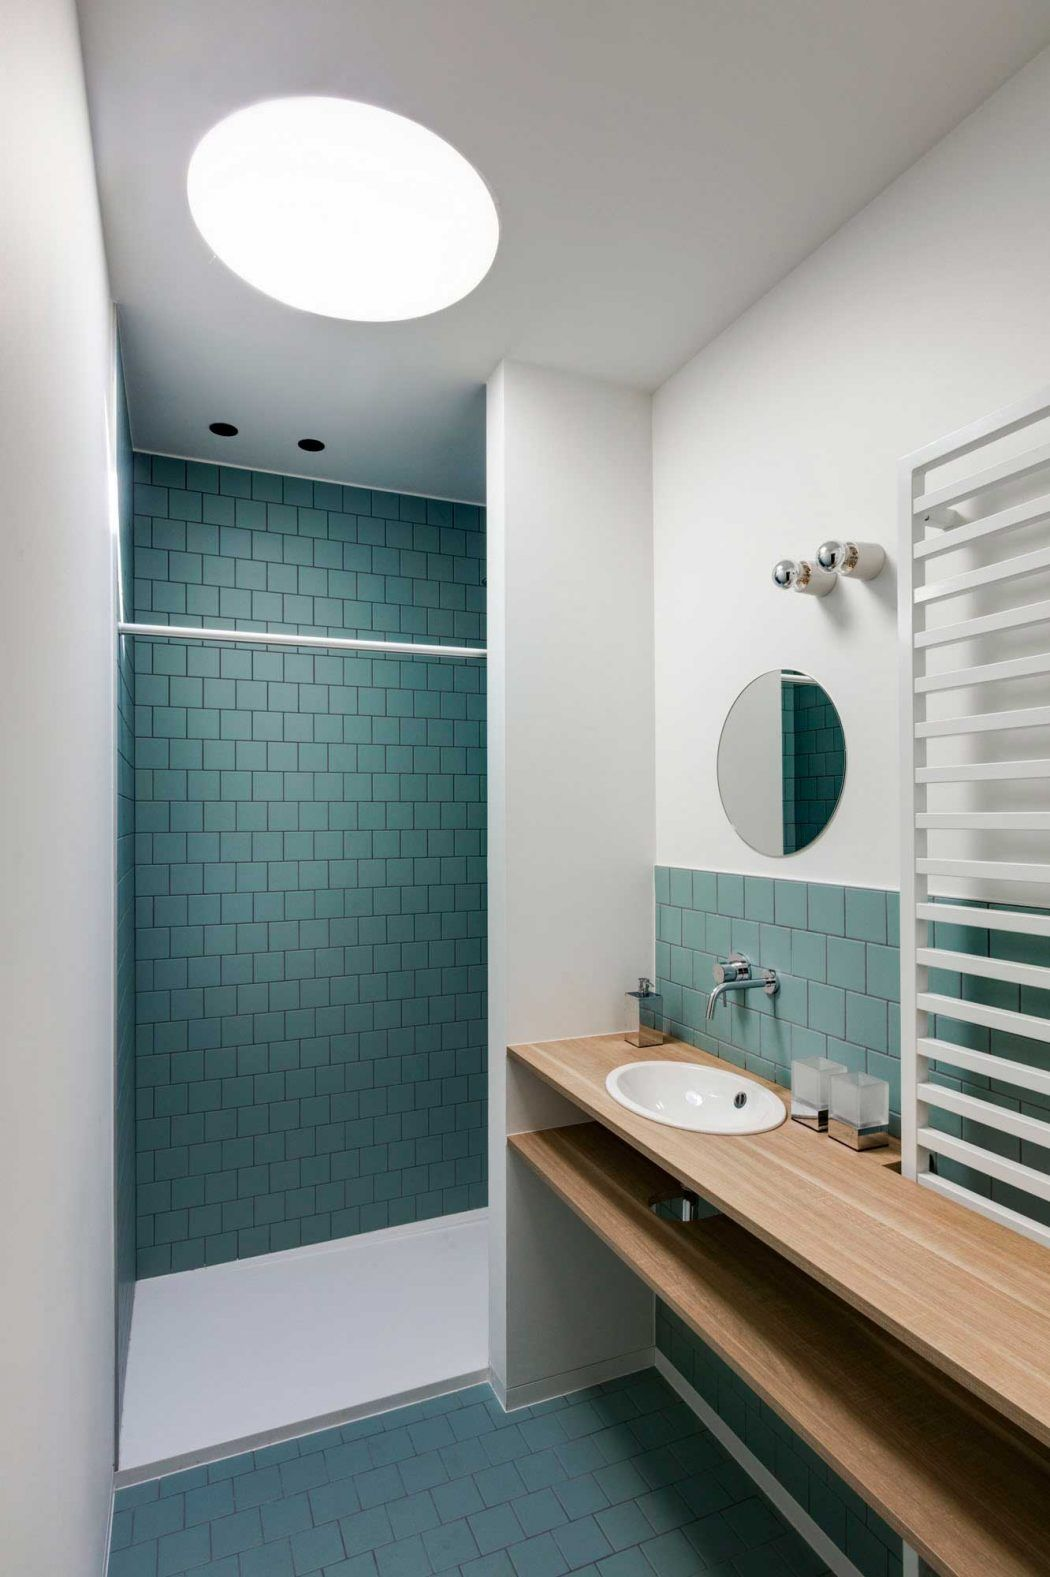 Badezimmer Matte Fliesen Modern Matte Muted Green Tile In Bathroom With Light Wood